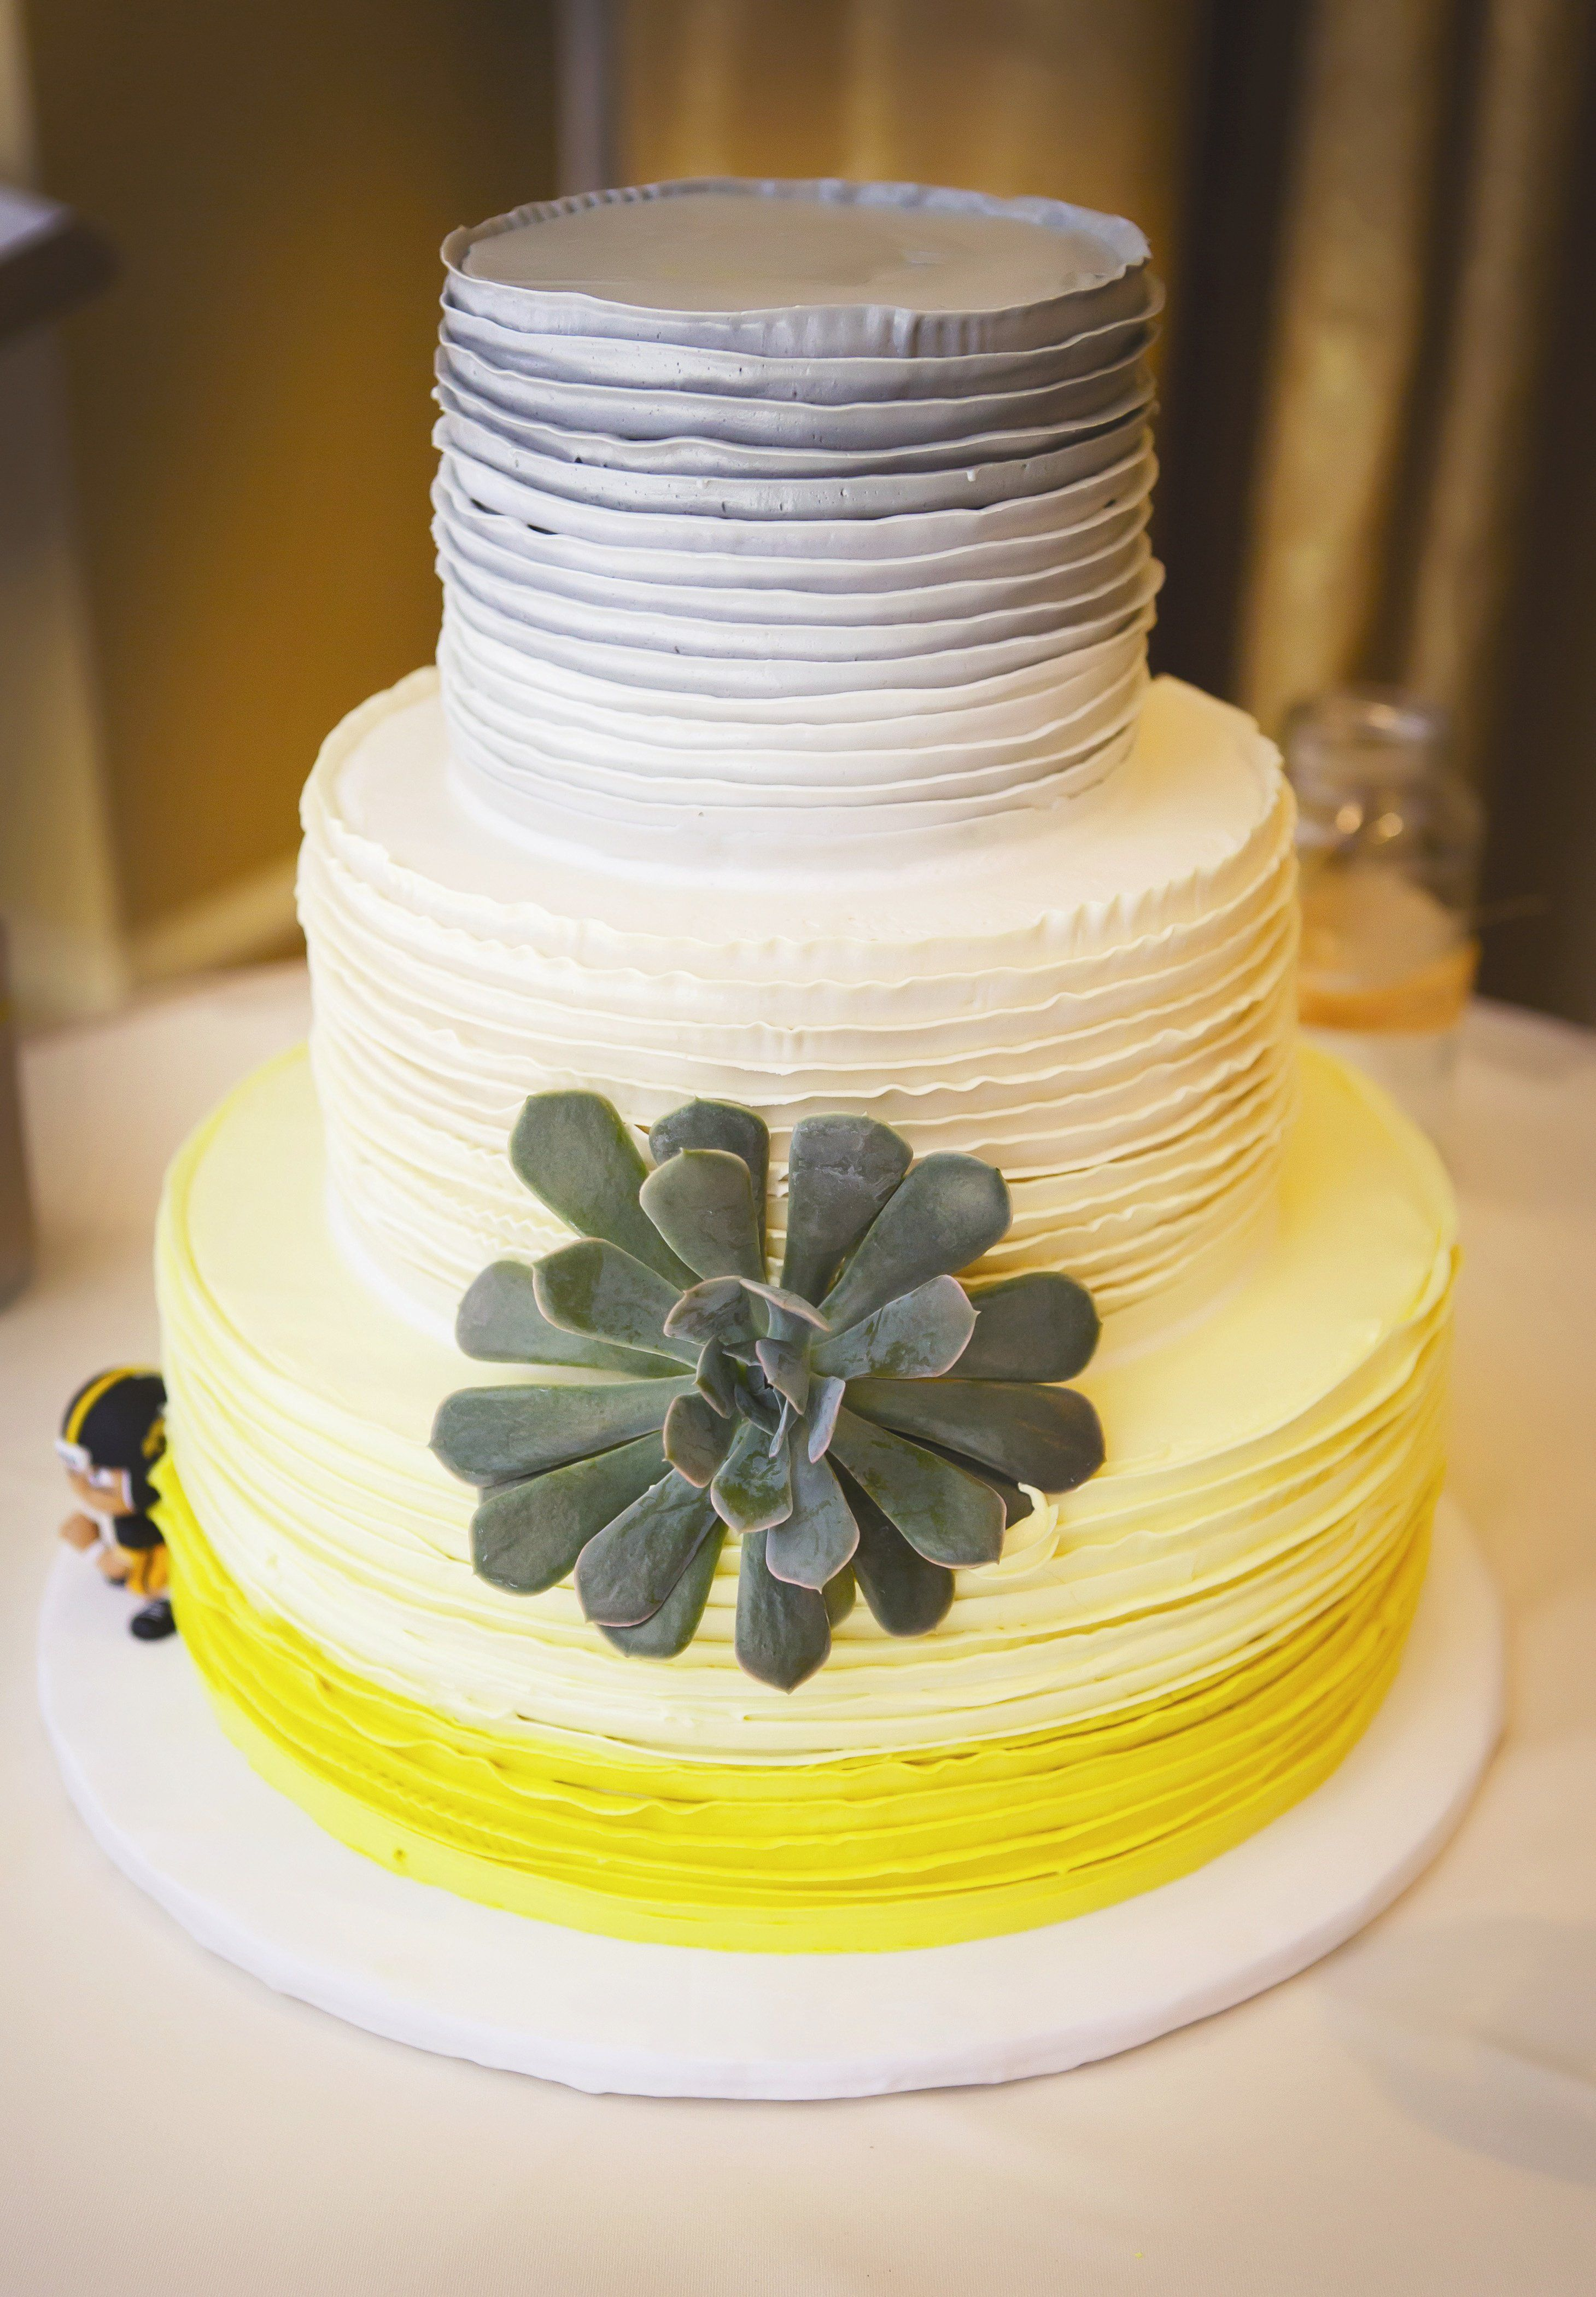 Ombre Gray and Yellow Wedding Cake | wedding ideas for my sister ...